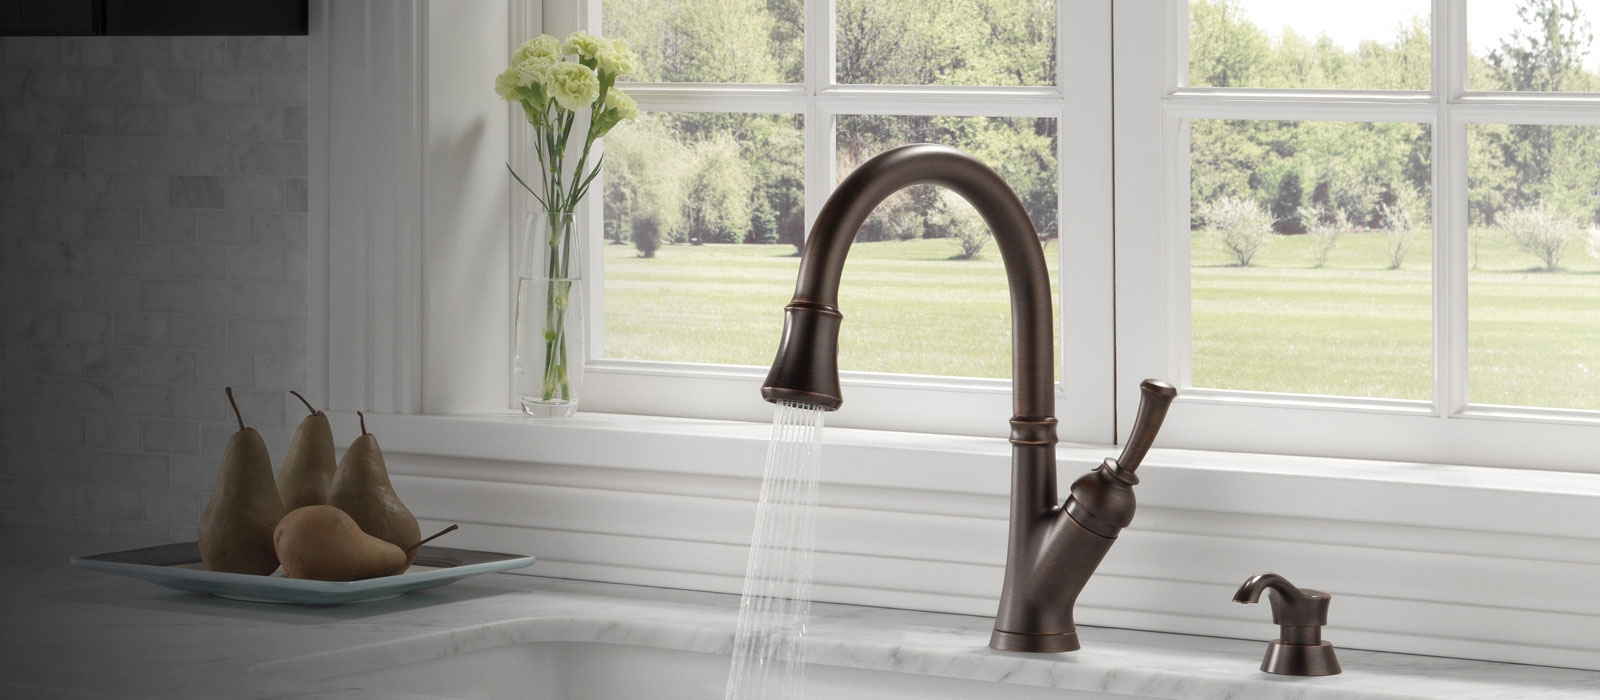 Ideas, delta savile stainless kitchen faucet delta savile stainless kitchen faucet savile kitchen collection 1600 x 700  .